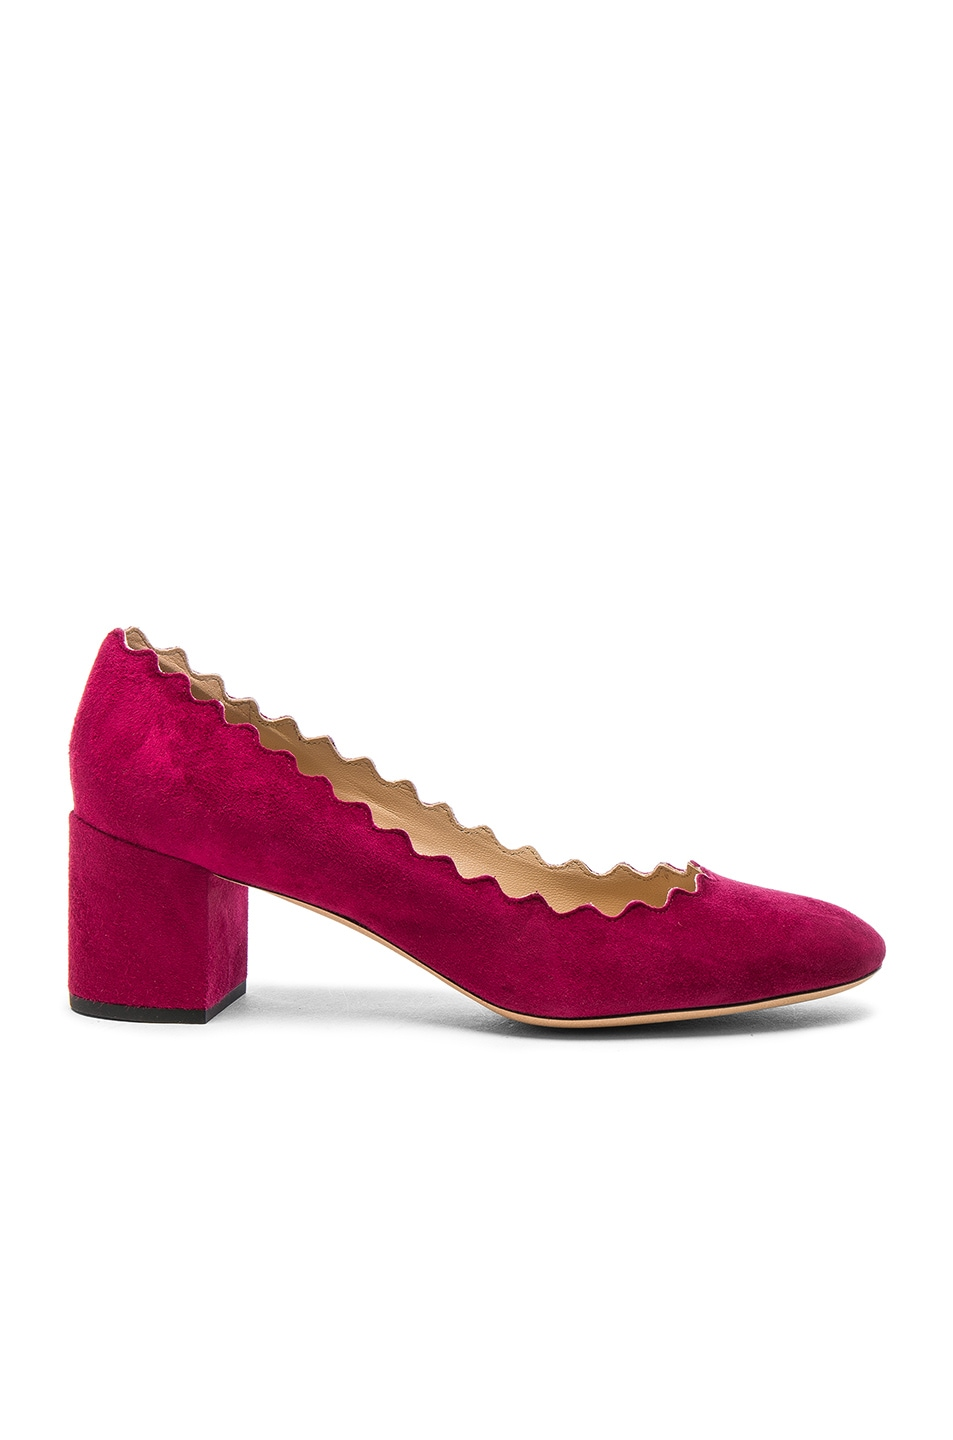 Image 1 of Chloe Suede Lauren Heels in Red Orchid